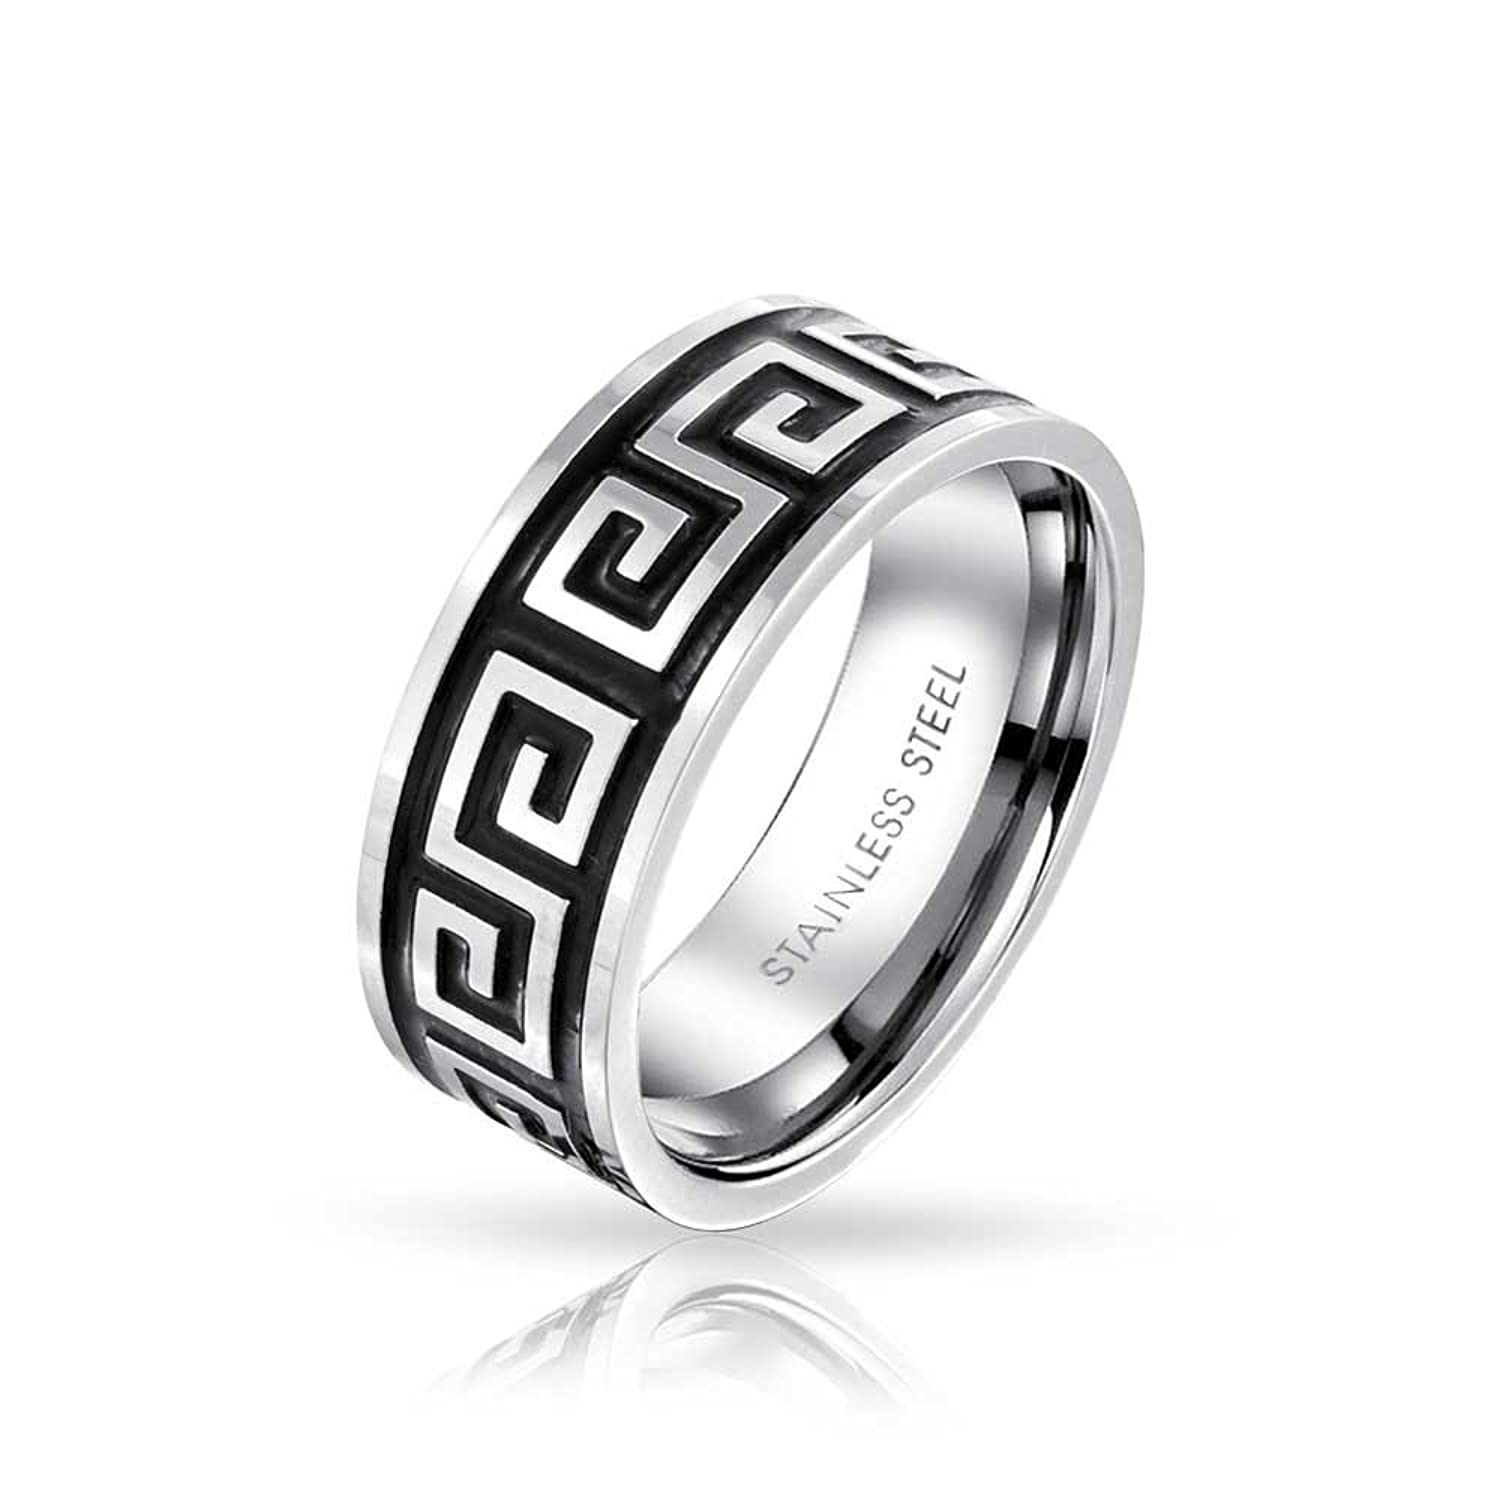 Bling jewelry greek key mens stainless steel band ringamazon biocorpaavc